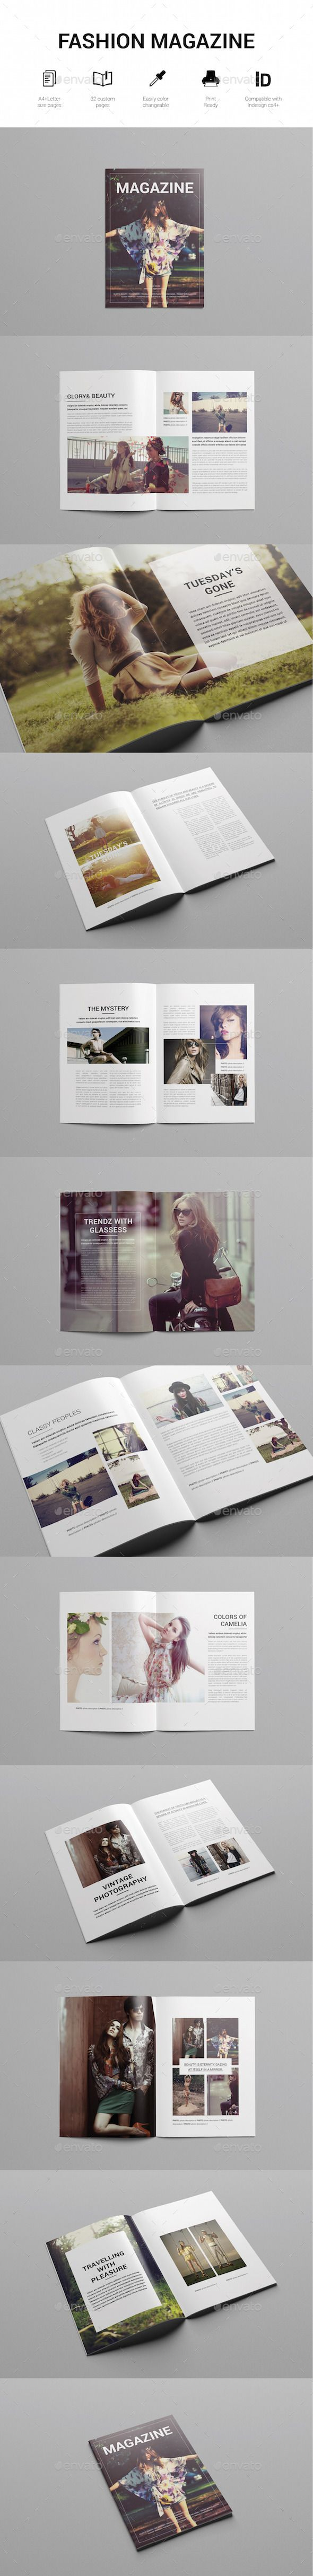 Minimal Fashion Magazine Template | #magazinetemplate | Download: http://graphicriver.net/item/minimal-fashion-magazine-template/10028651?ref=ksioks